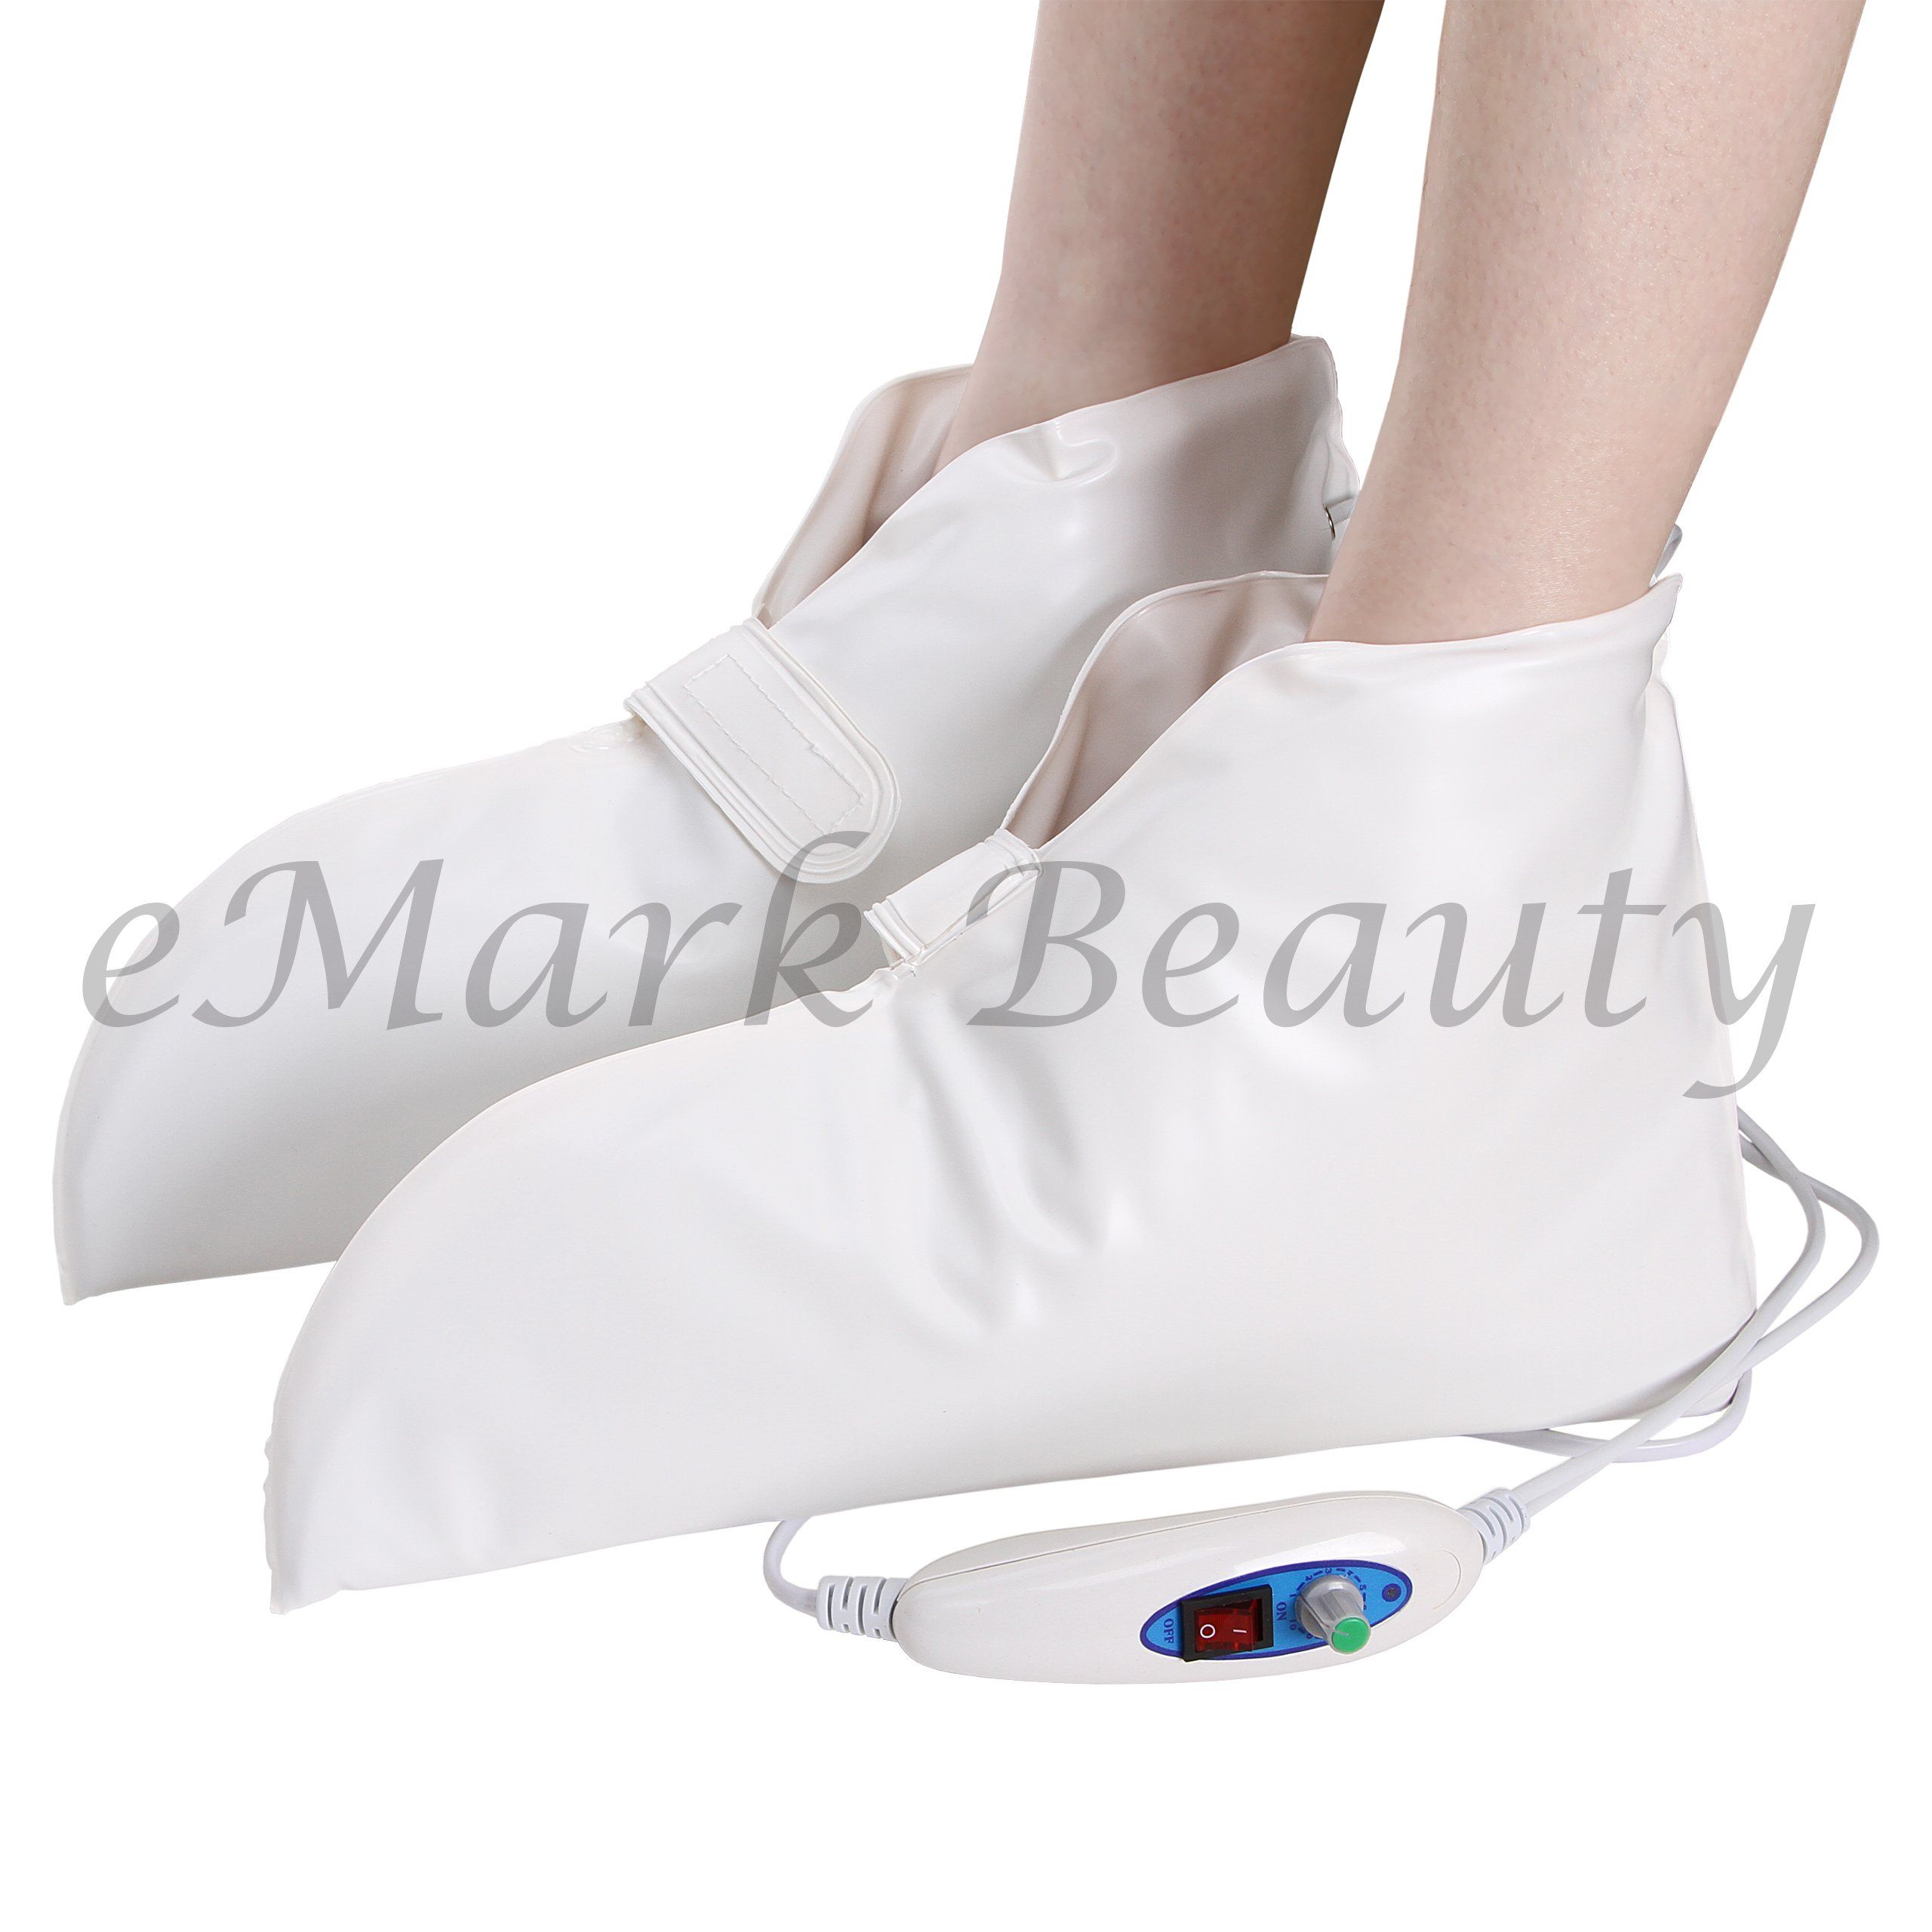 Wax Pedicure and Manicure Machine for Feet and Hands, with Heated Electrical Booties and Gloves for Continuous Hydrating Heat Therapy TLC-5009GW by eMark Beauty (Image #3)